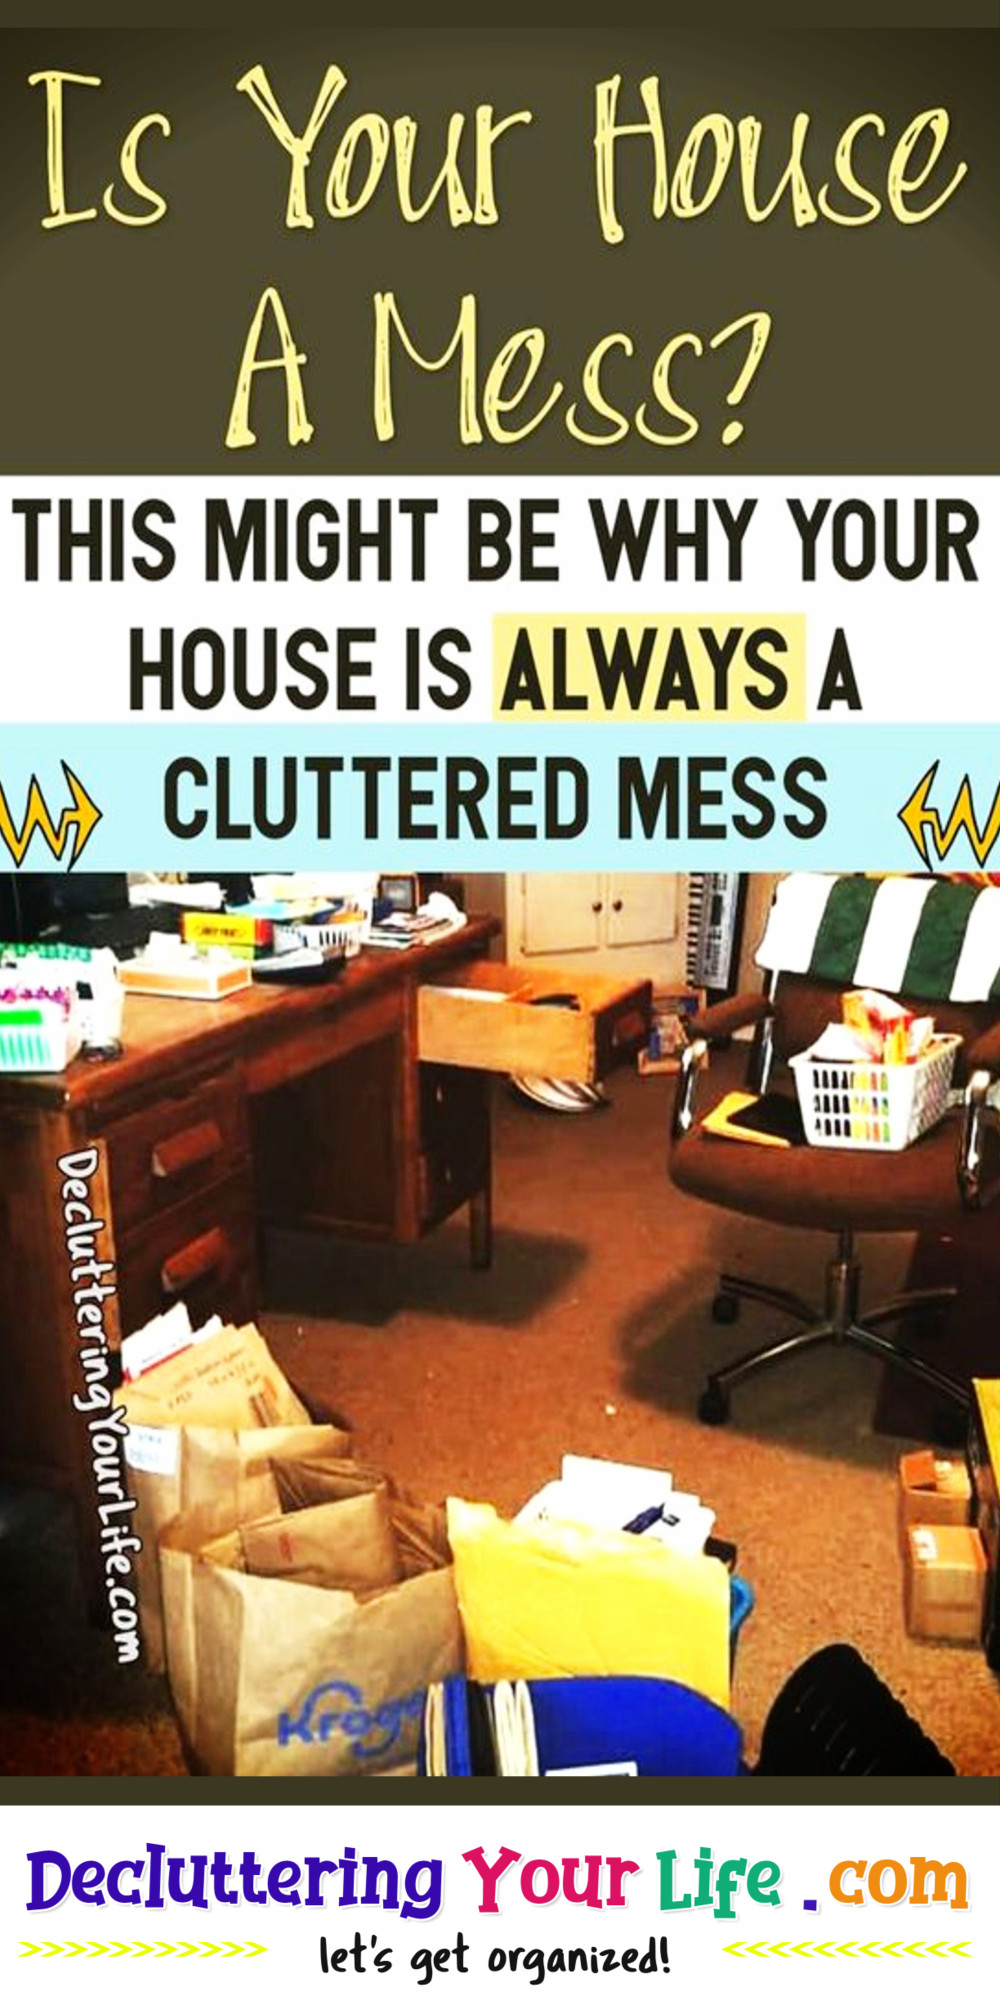 House ALWAYS a MESS? How to control clutter & where to start uncluttering your home - Go from cluttered mess to organized success with my Decluttering Club Declutter Challenge tips & inspiration to UNclutter your home without feeling overwhelmed or making decluttering mistakes